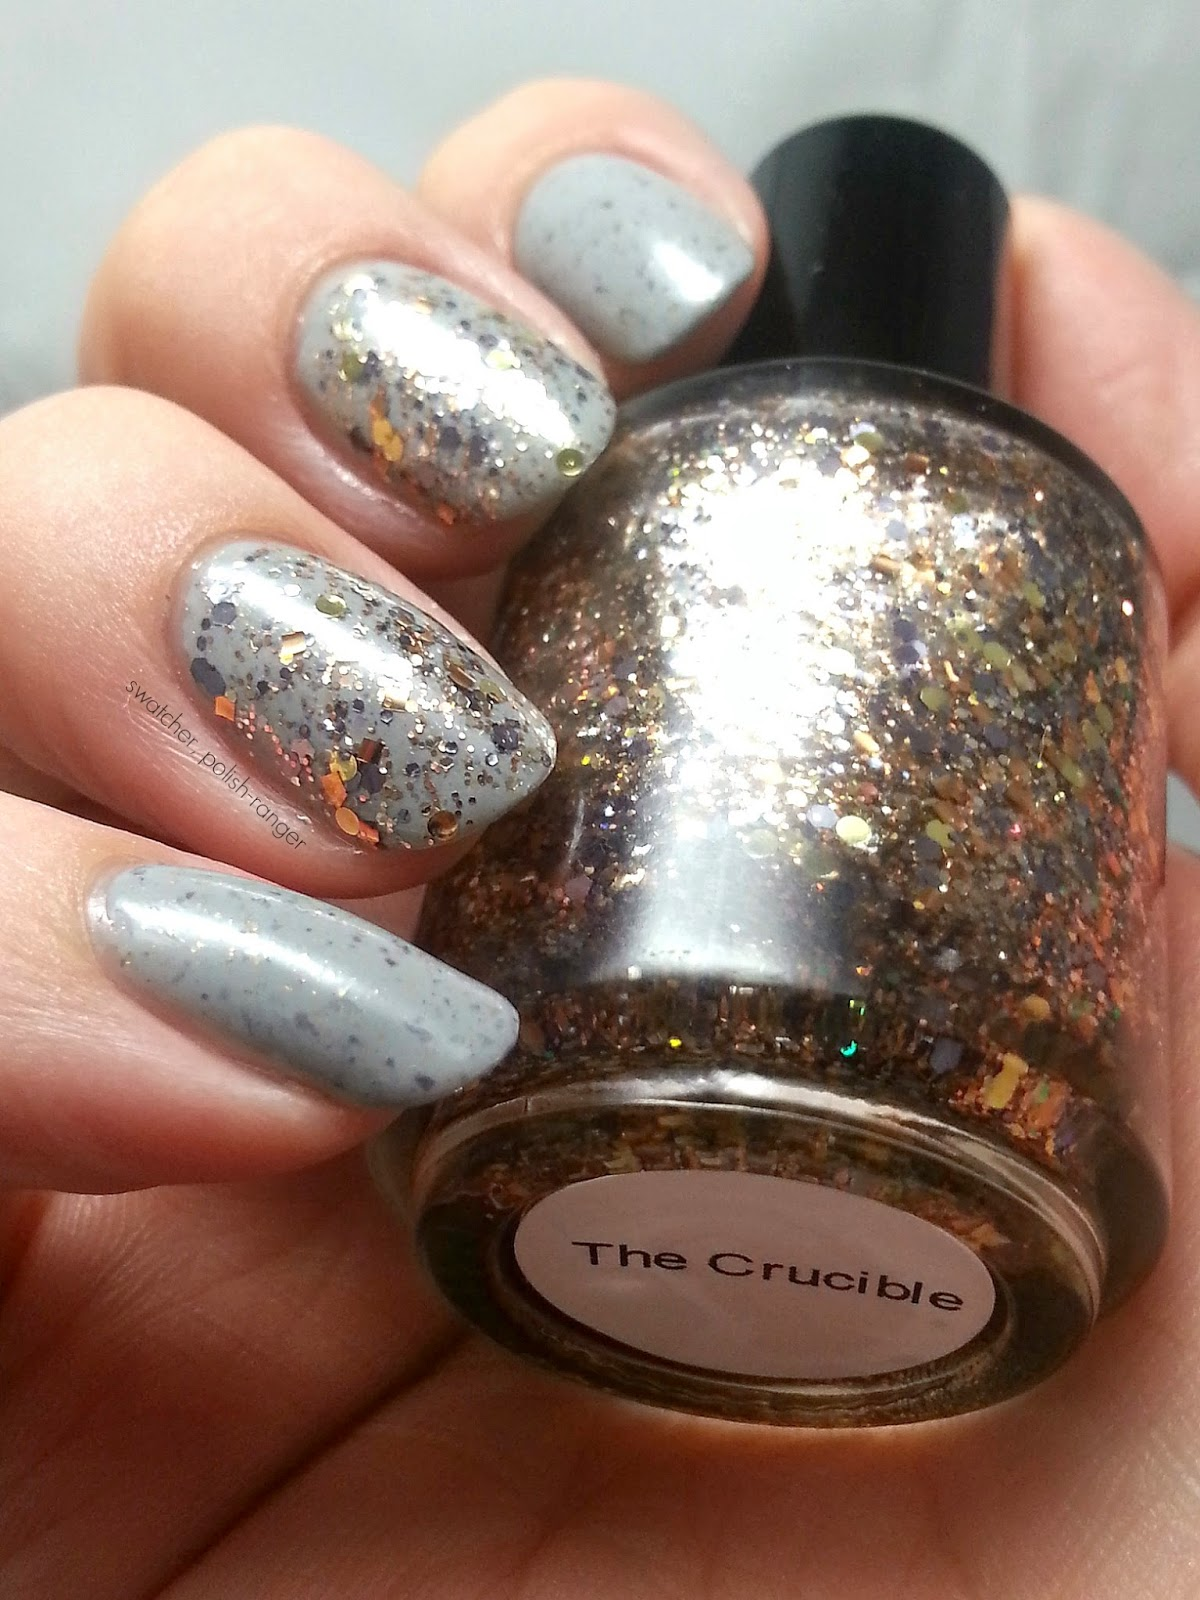 Pahlish The Crucible swatch